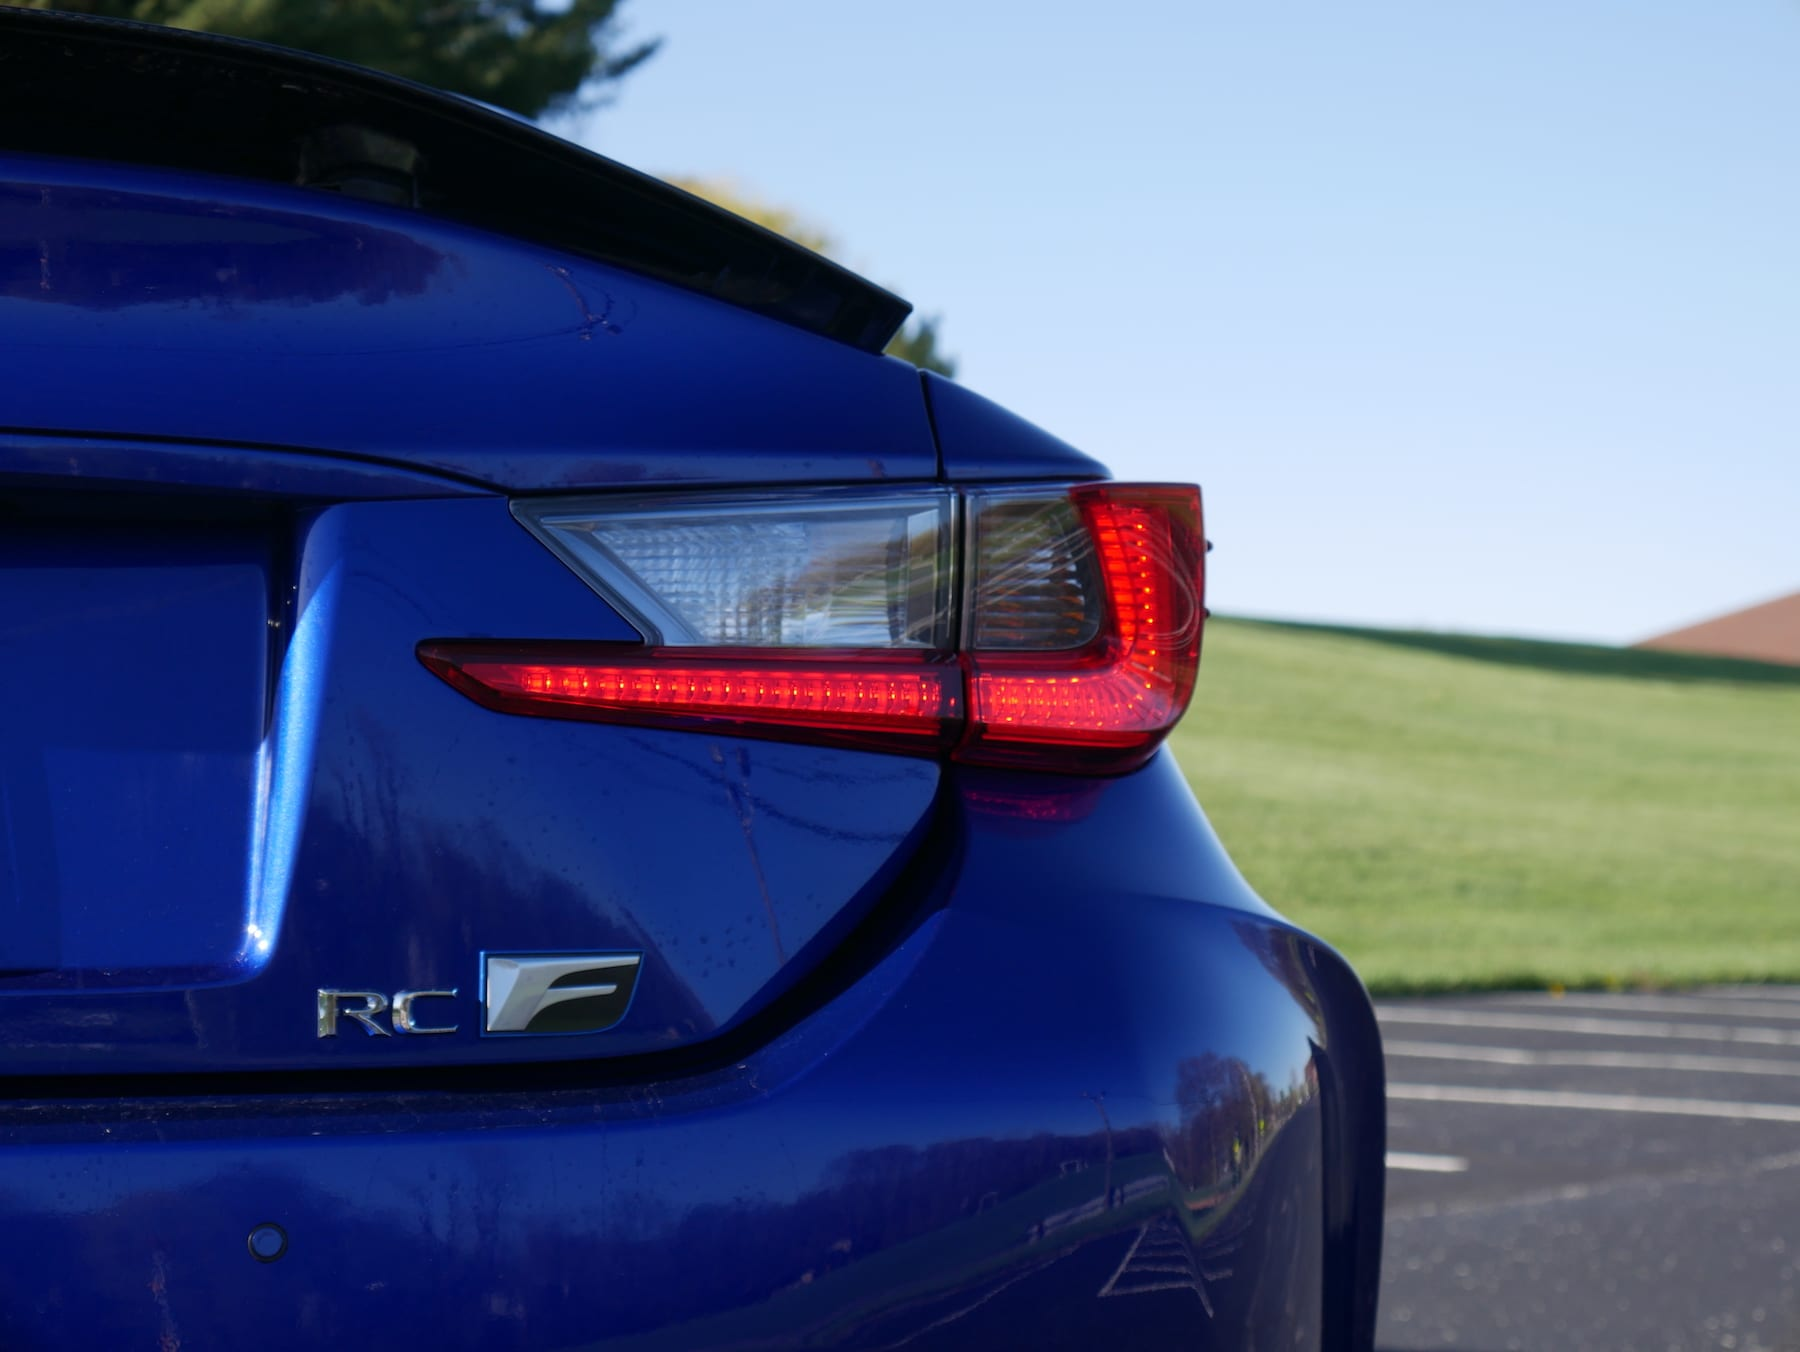 2019 Lexus RC F taillight